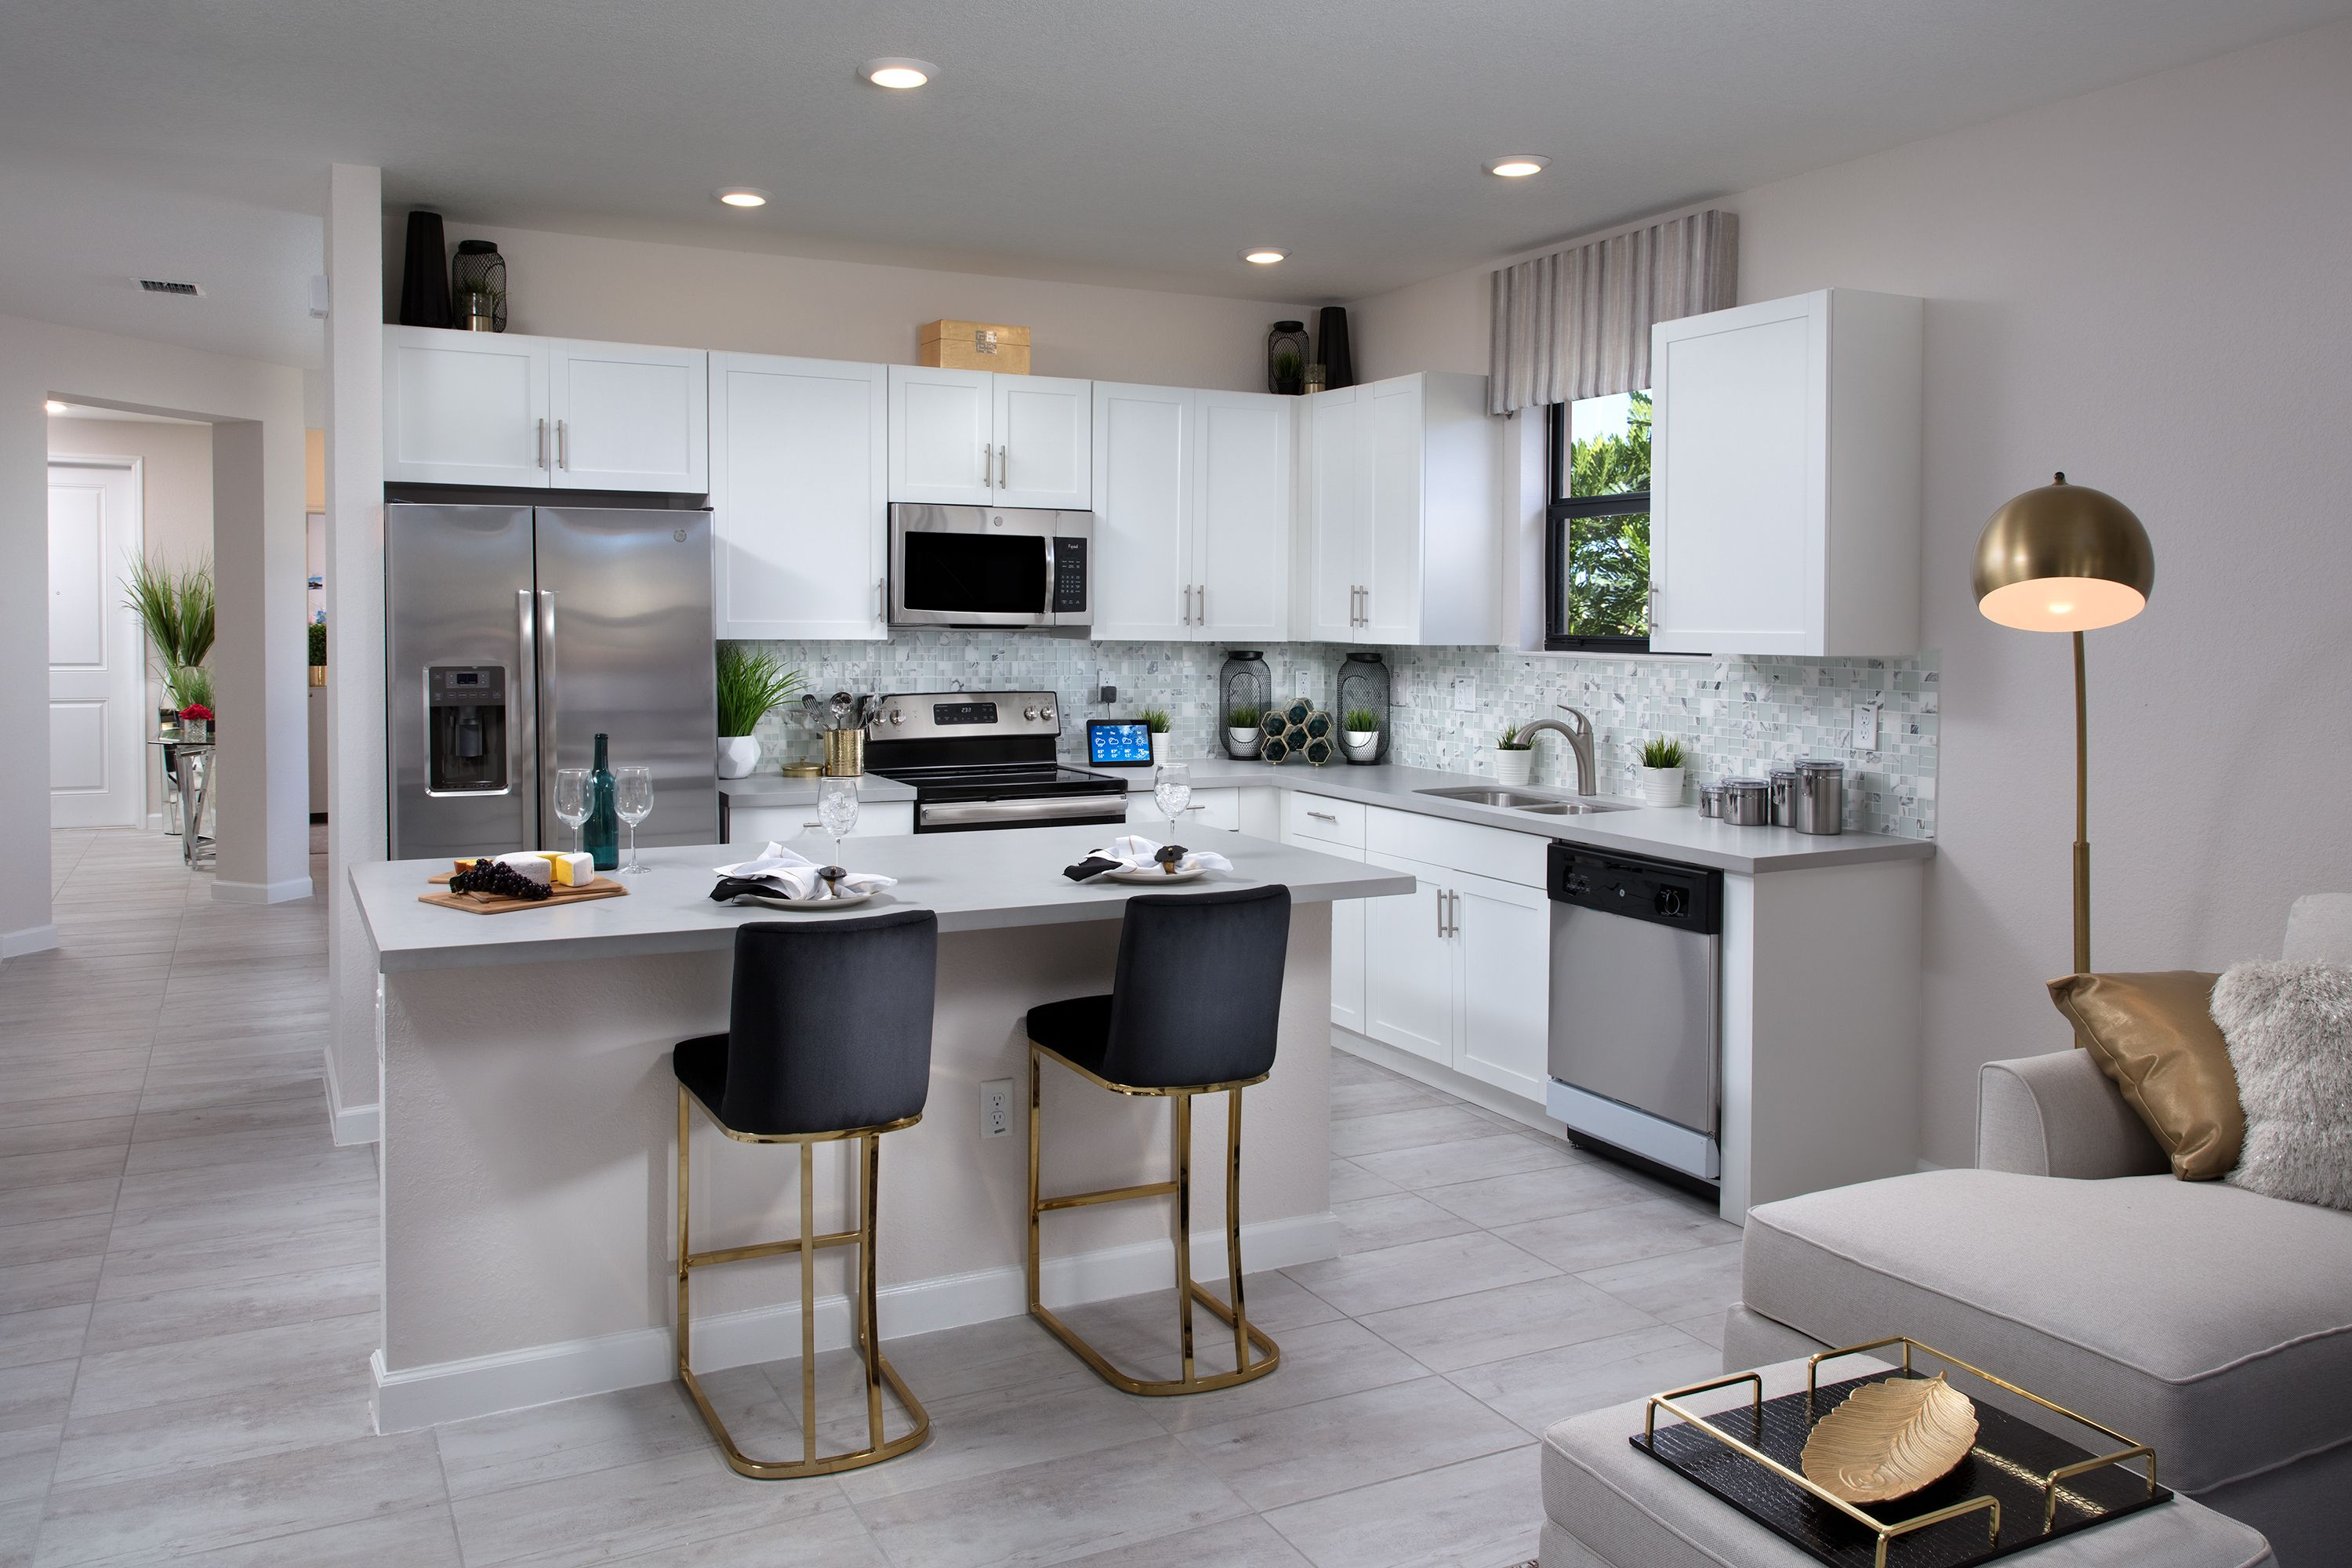 The Kitchen Features Stainless Steel Appliances Large Pantry Closet And Center Island To Make Cooking A Breeze Portovita In 2020 New Homes Home New Homes For Sale